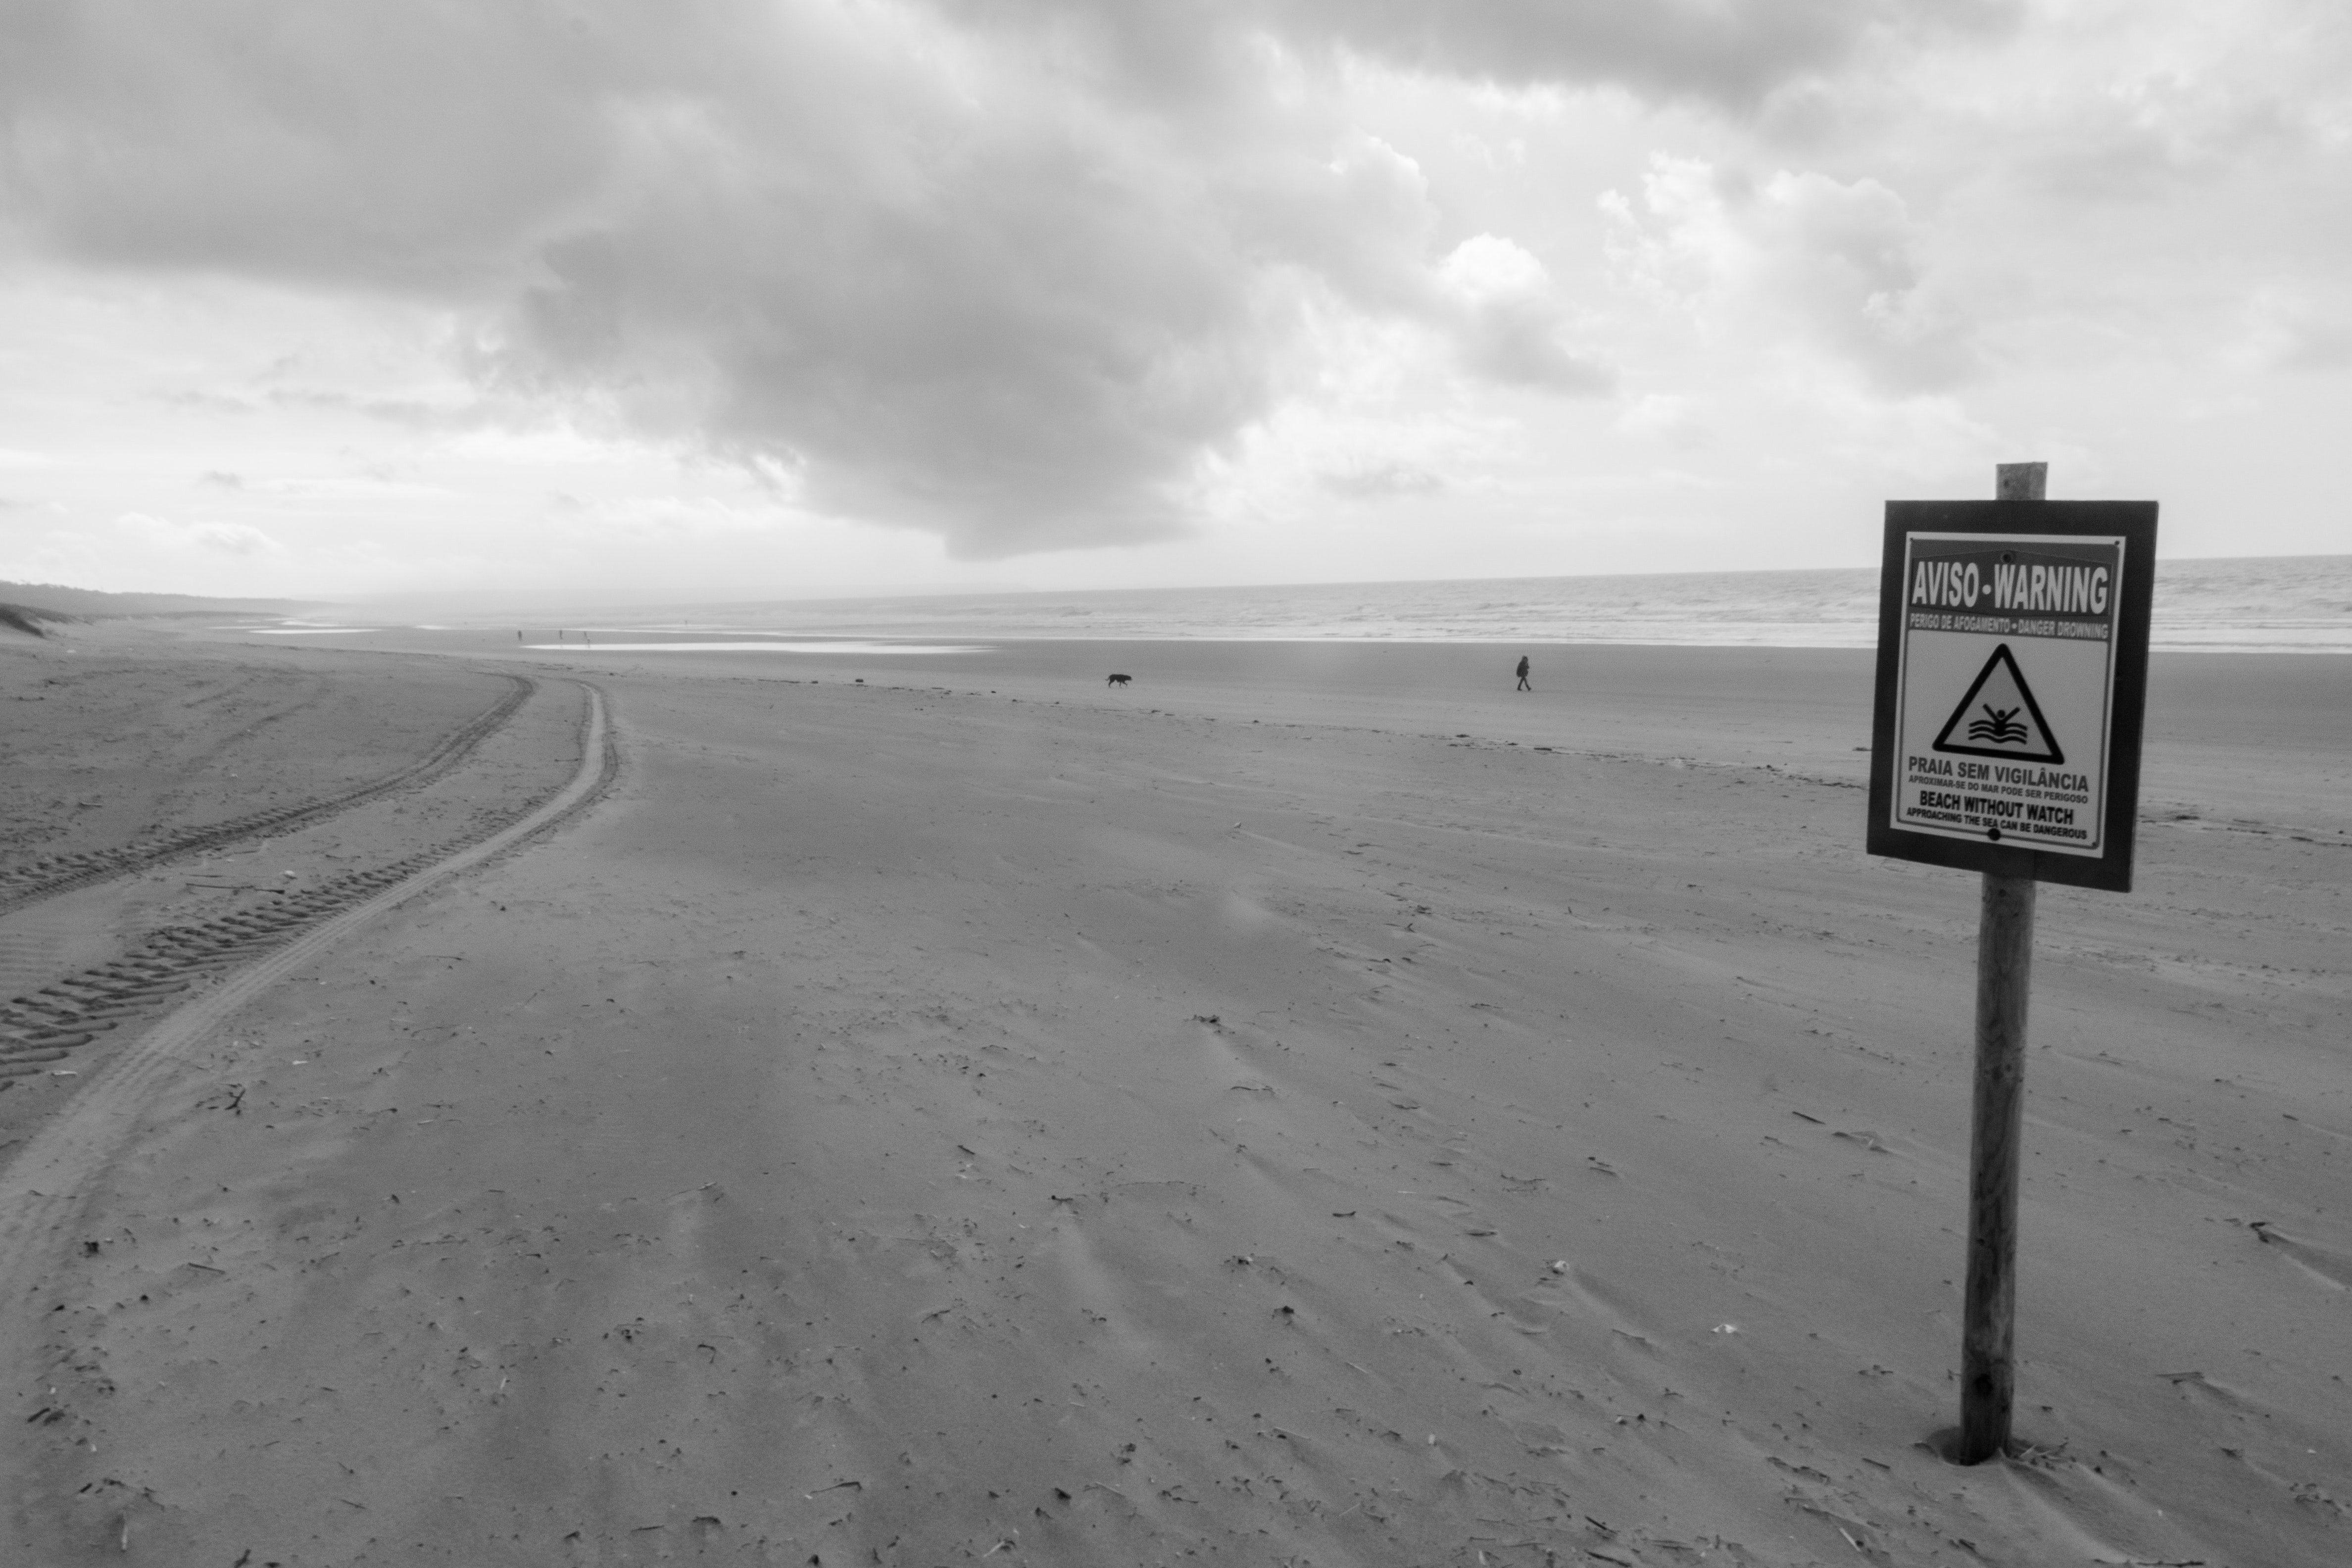 Grayscale photo of sand